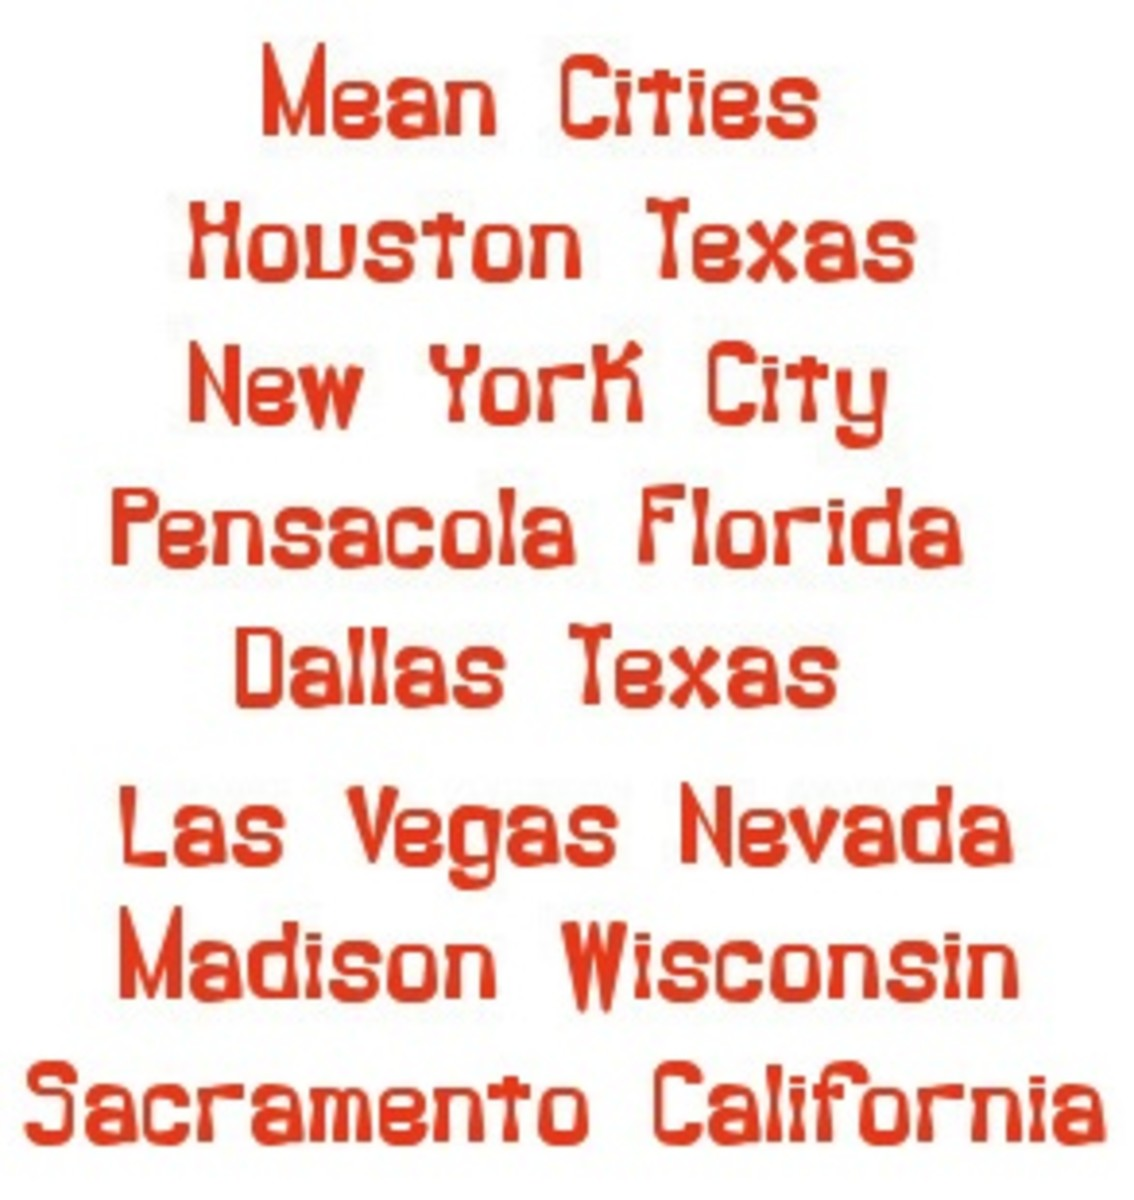 It Is Against the Law to Be Homeless or To Help Homeless People In the USA! The Meanest Cities In the United States